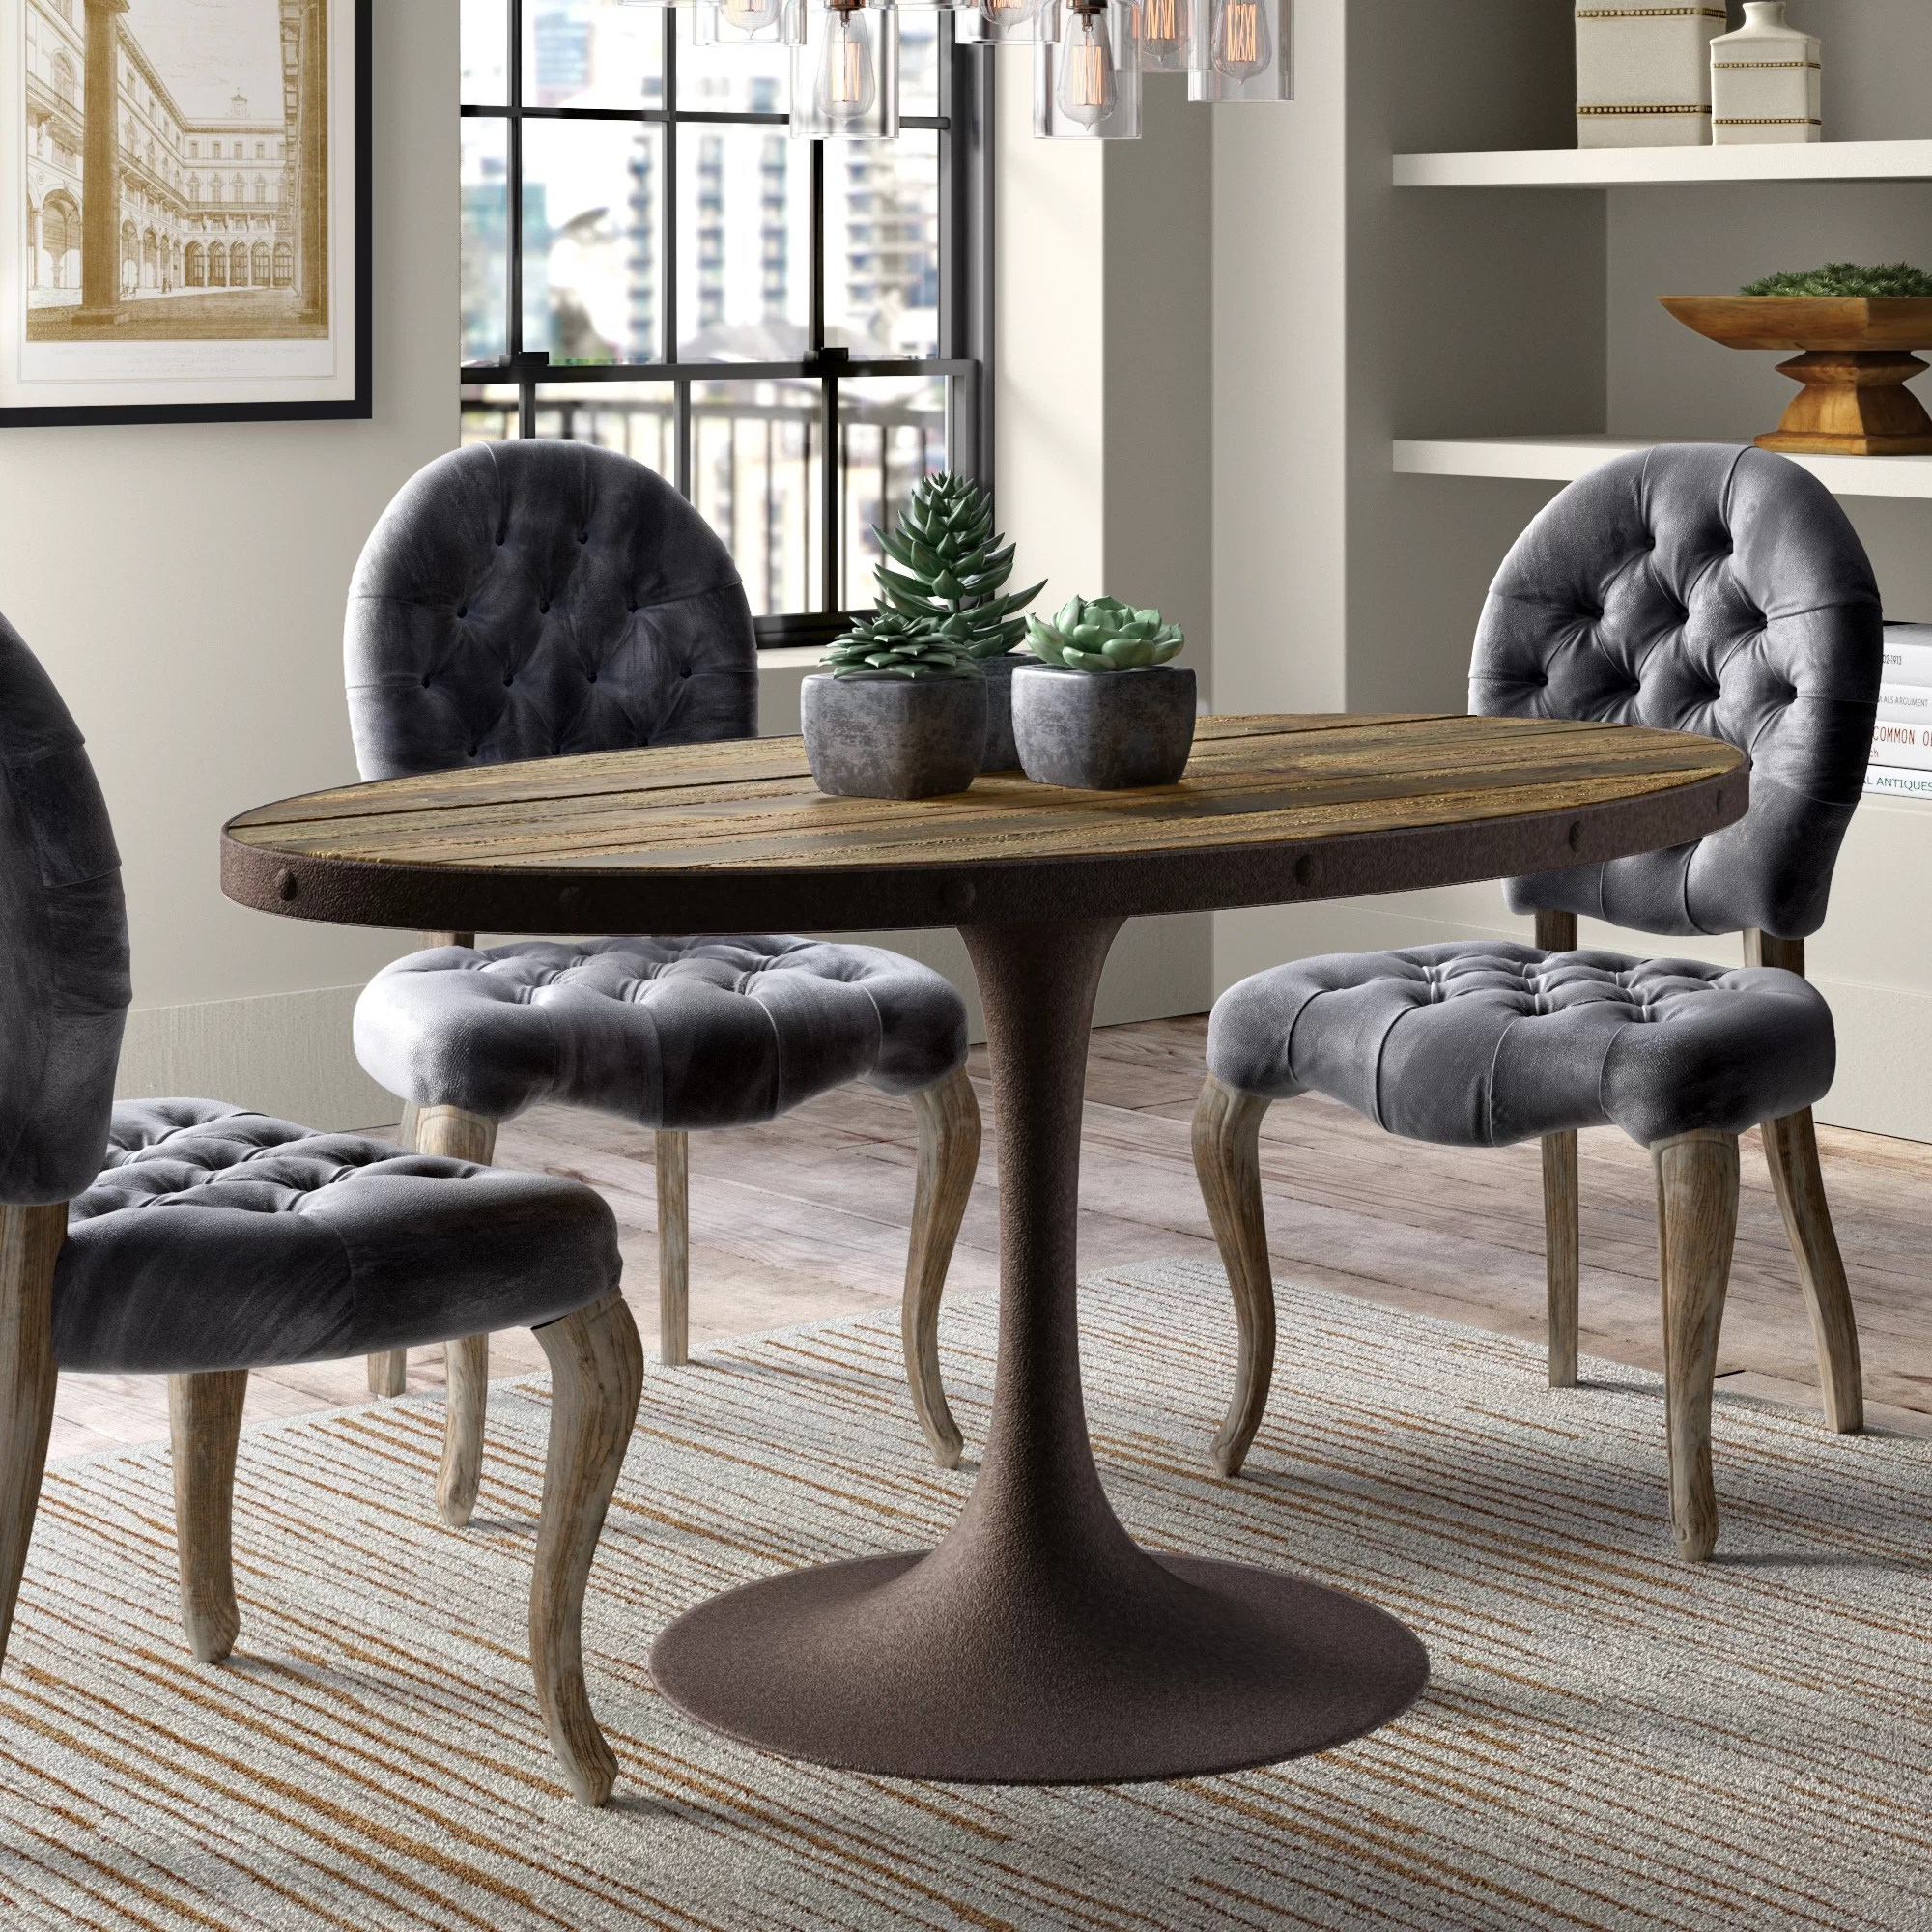 al s chairs and tables chair cover hire hemel hempstead amherst industrial wood top dining table reviews birch lane